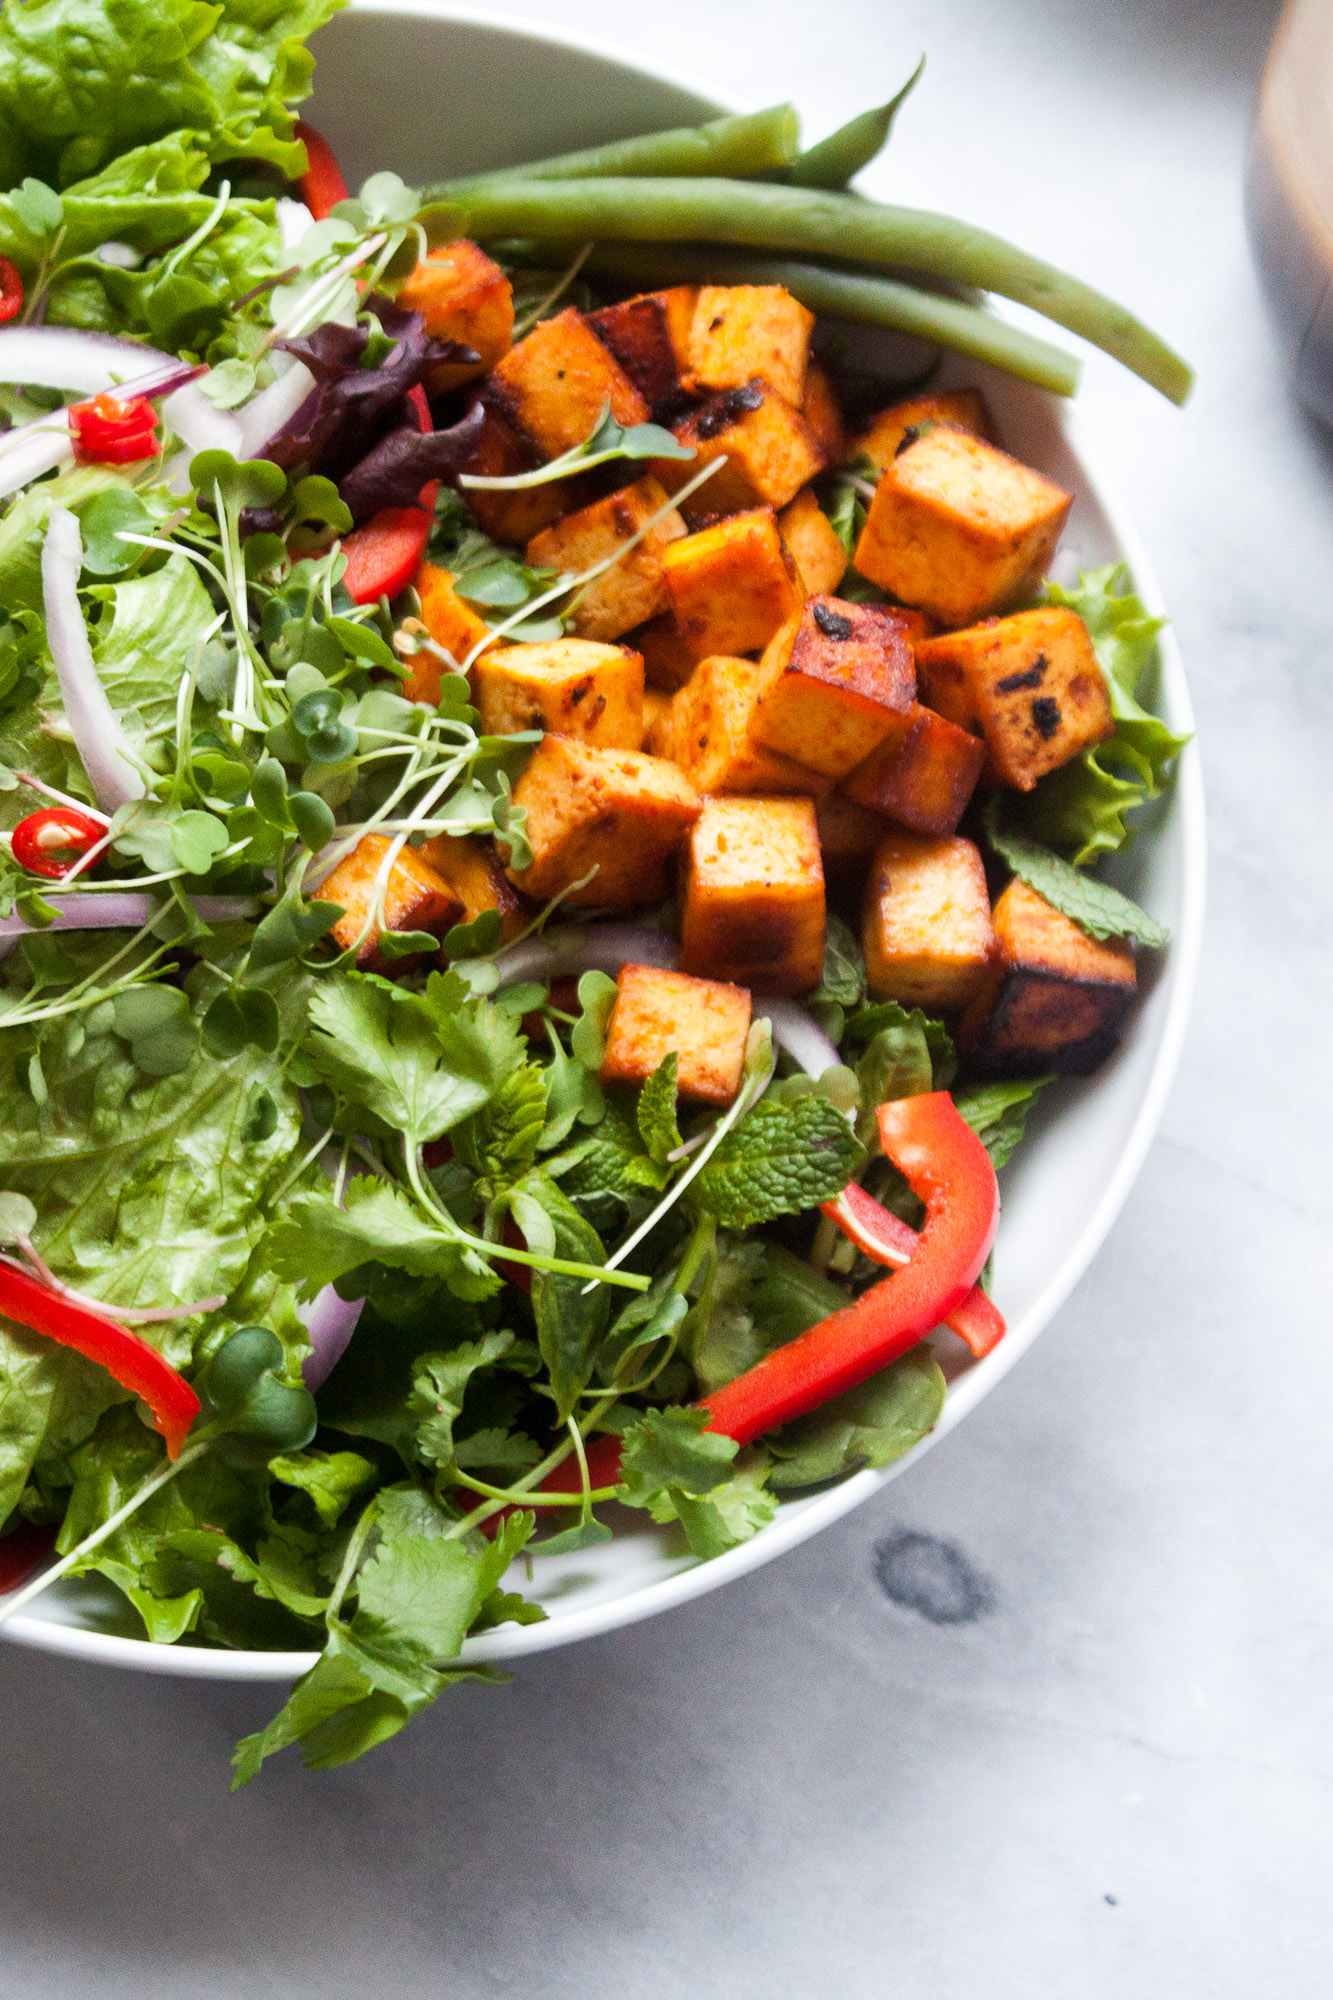 Fresh Herb & Green Salad with Baked Sriracha Tofu